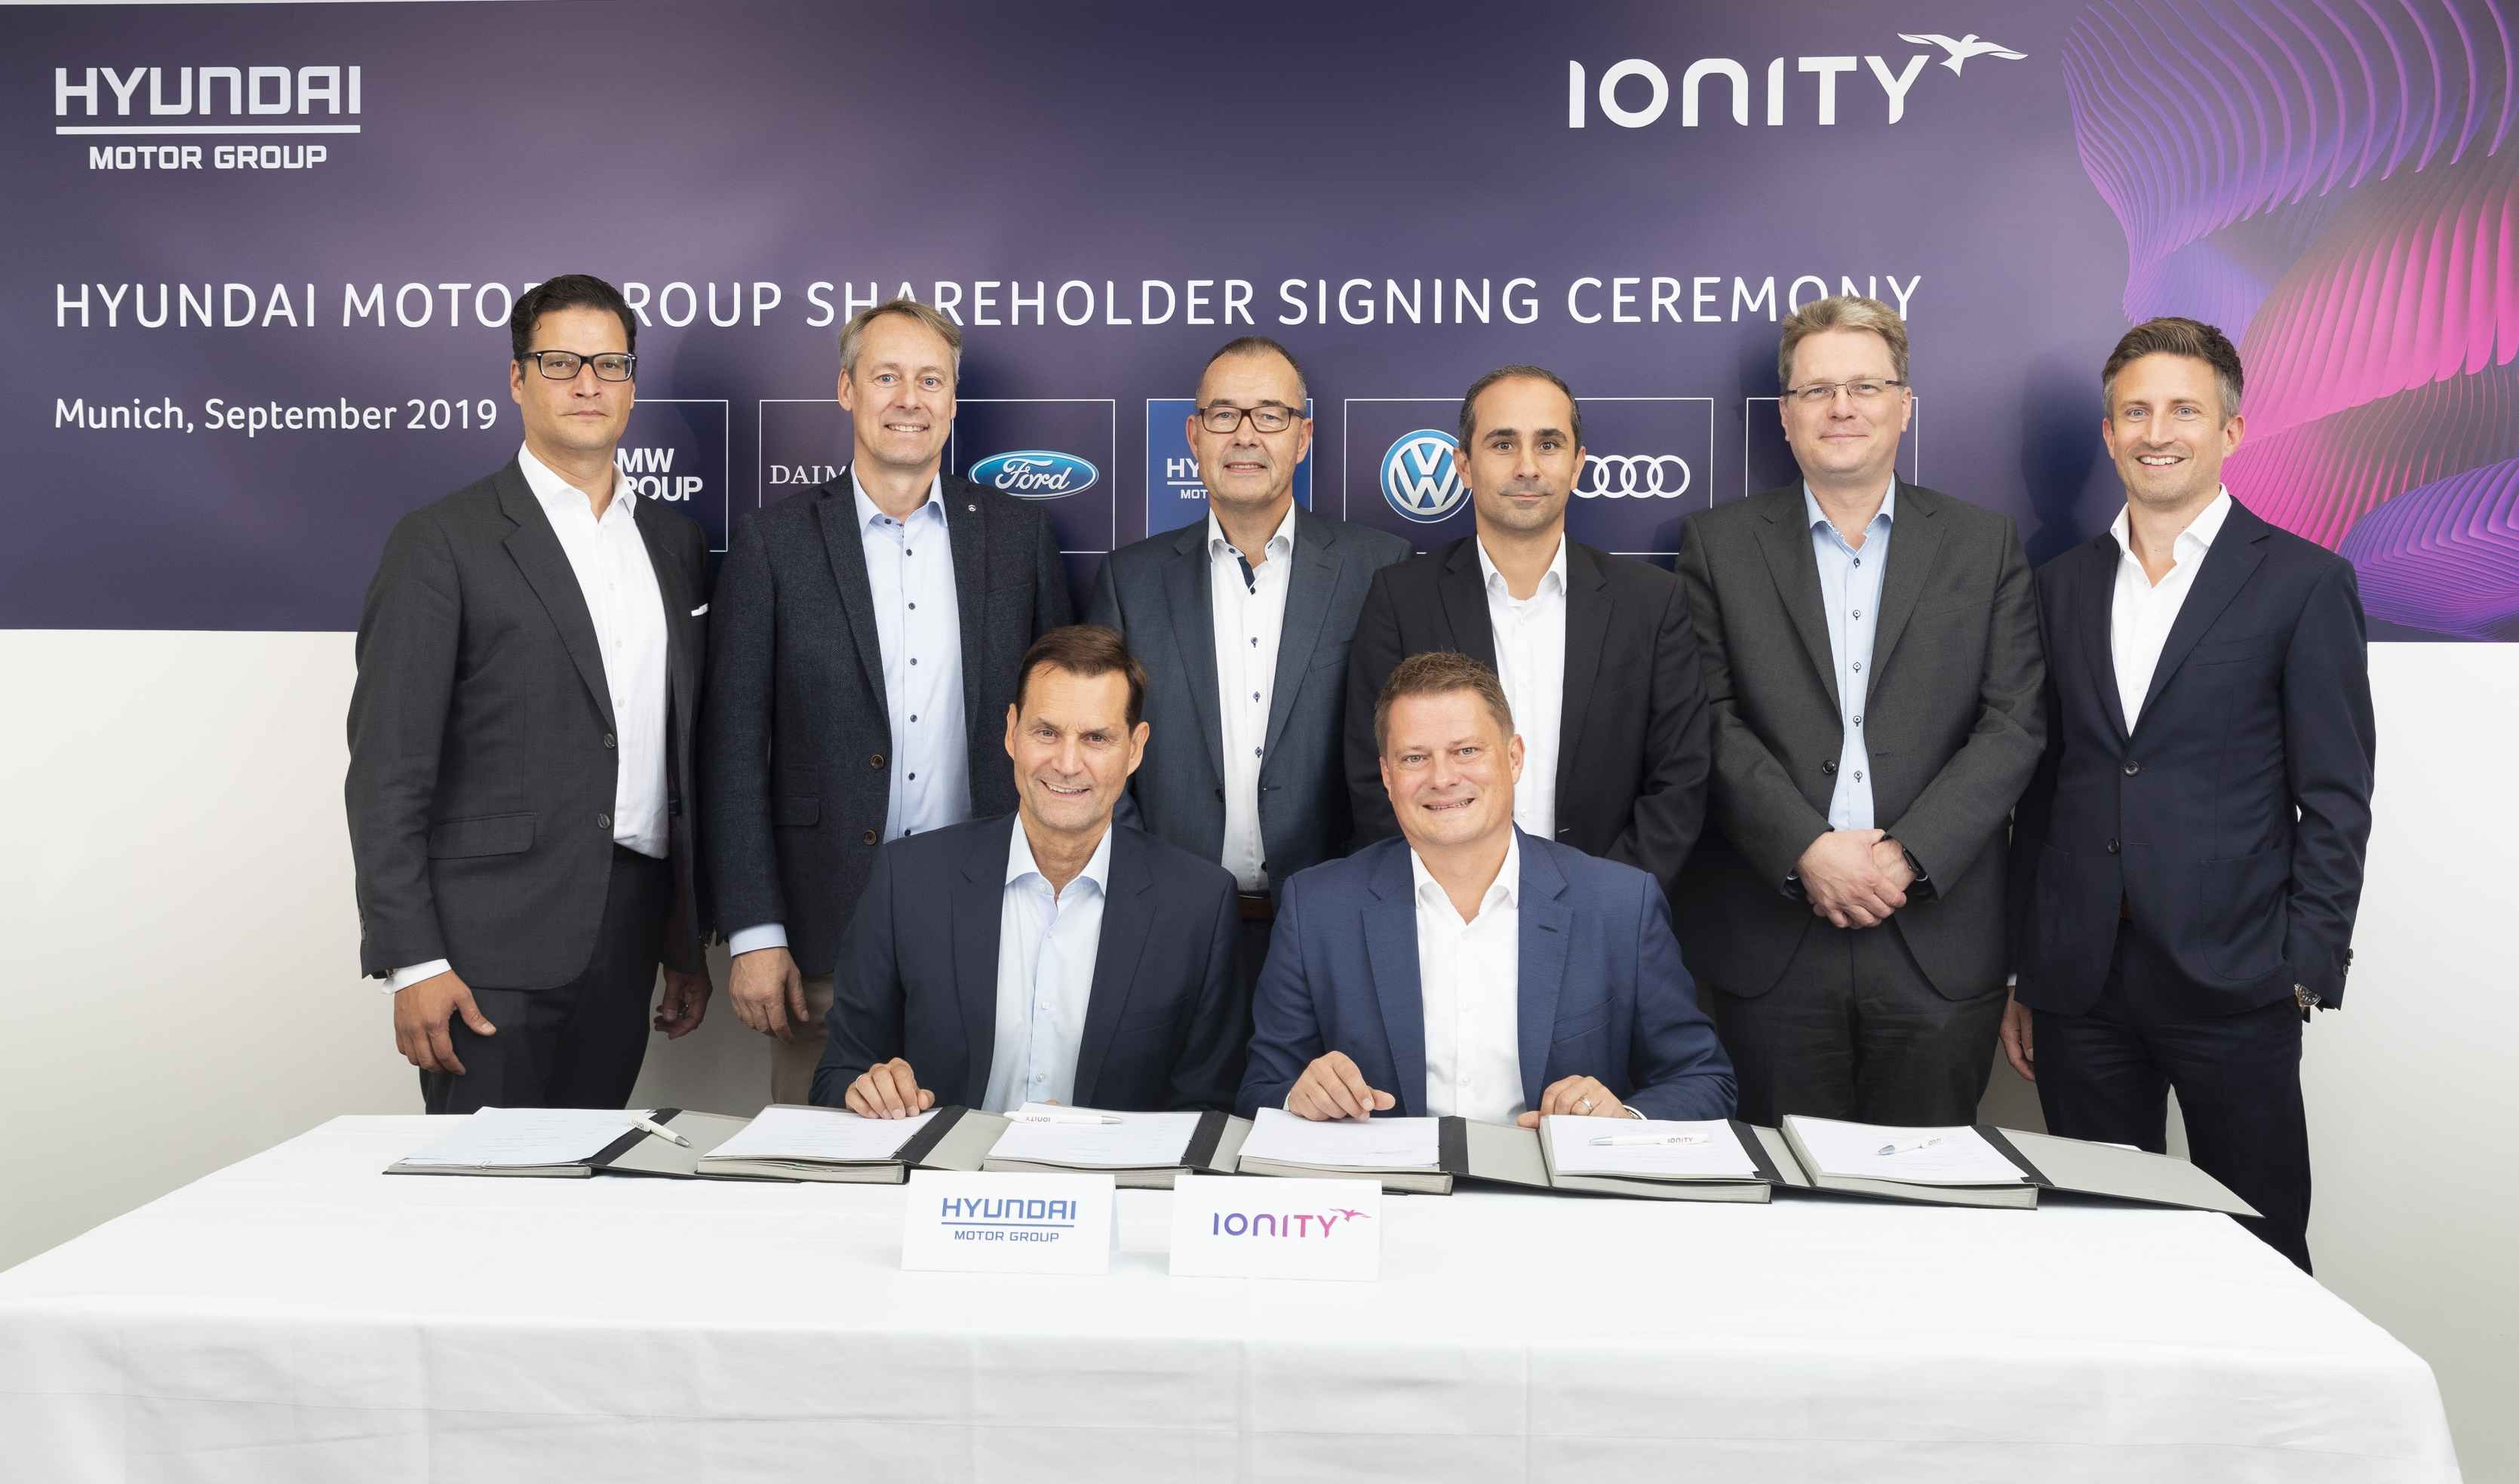 Hyundai & Kia Motors Invests in IONITY to Democratize High-Power EV Charging Network